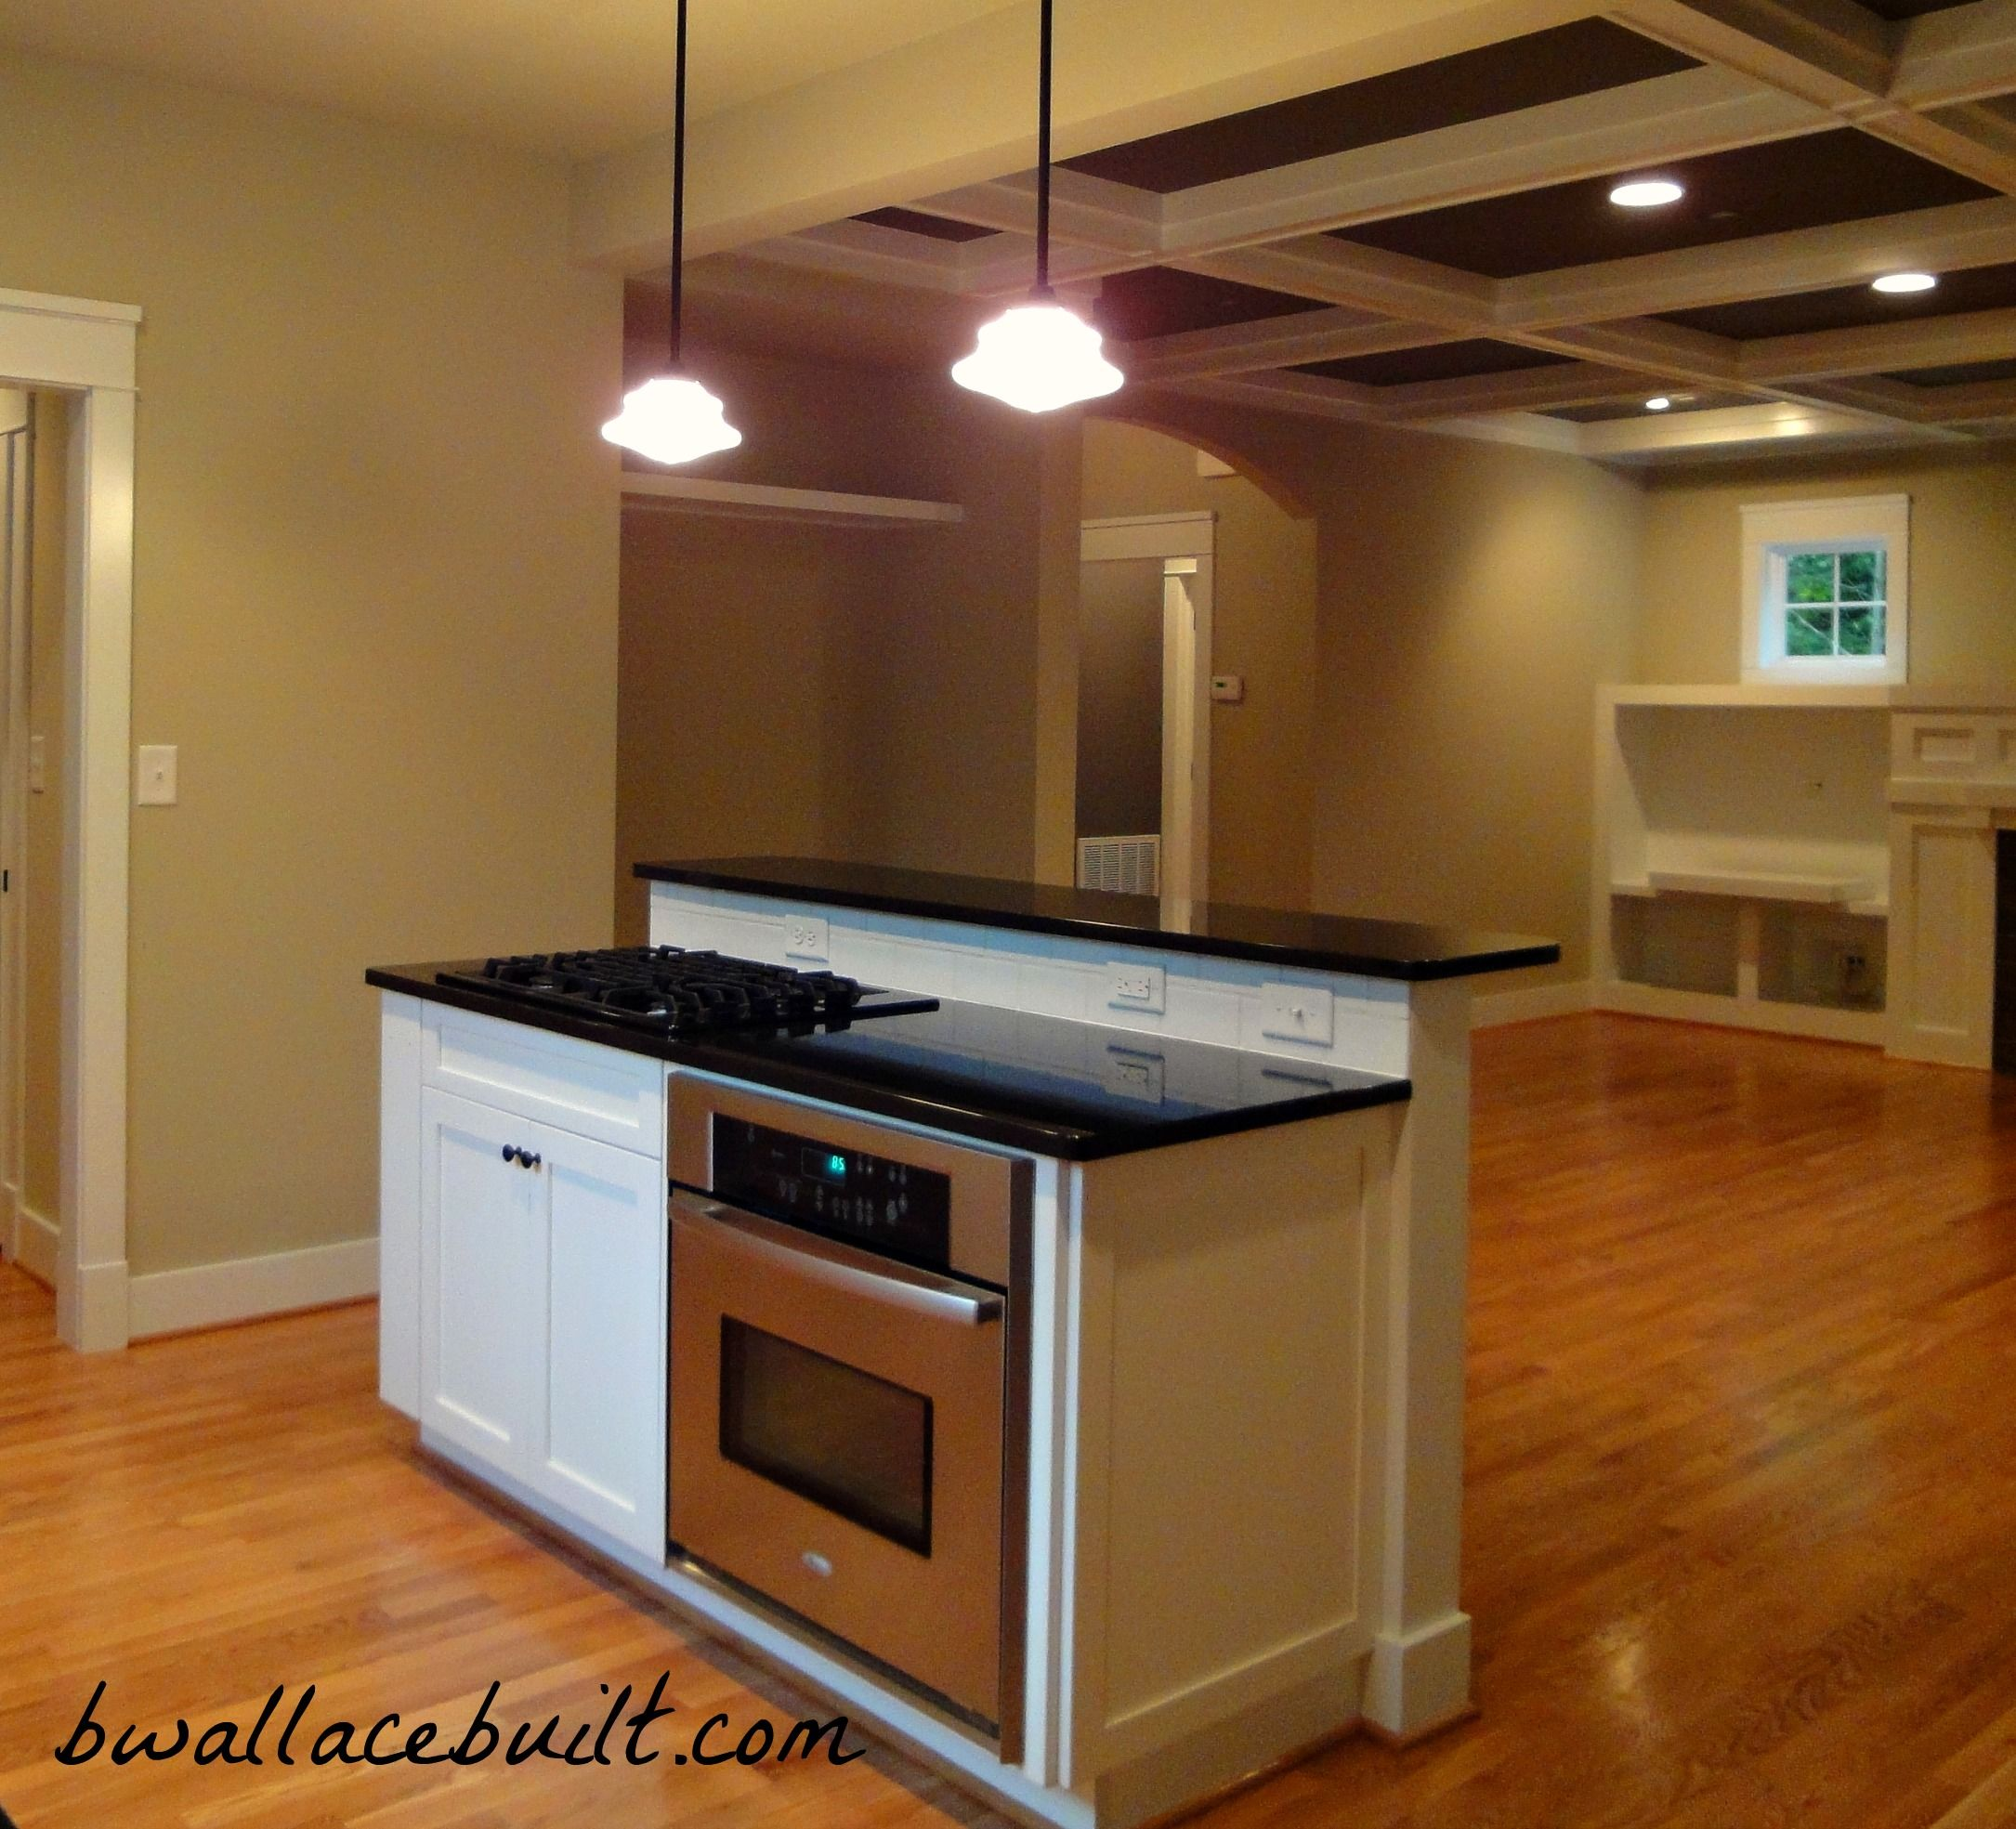 Kitchen Island Design With Oven Kitchen Island With Separate Stove Top From Oven Perfect Kitchen